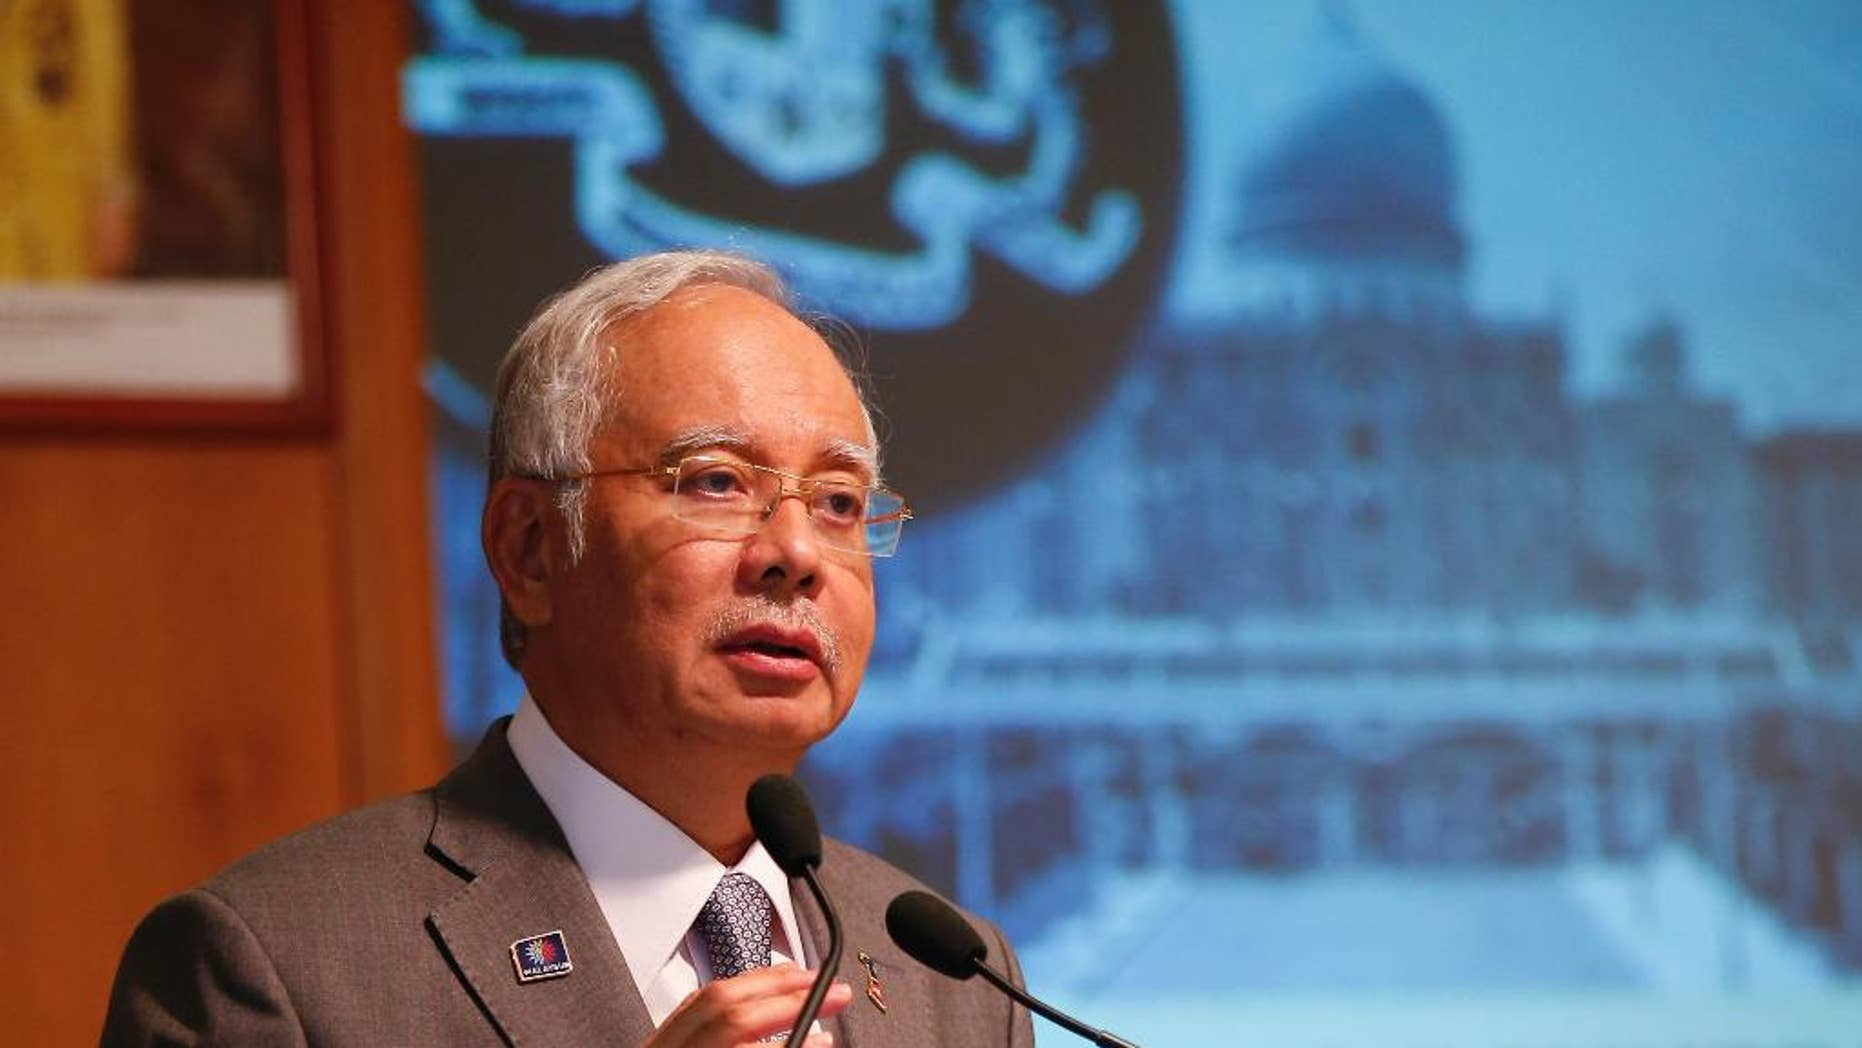 FILE - In this  Wednesday, July 8, 2015 file picture t Malaysian Prime Minister Najib Razak speaks during Perdana Fellowship Programme in Putrajaya, Malaysia. Embattled Malaysian Prime Minister Najib Razak is not known to be a risk-taker, but he made his biggest political gamble to stay in power last week as he got rid of critics in his Cabinet, sacked the attorney-general probing him and stalled investigations over leaked confidential documents that allegedly show some $700 million was siphoned out from a troubled state fund into his personal accounts.   (AP Photo/Vincent Thian/FILE)